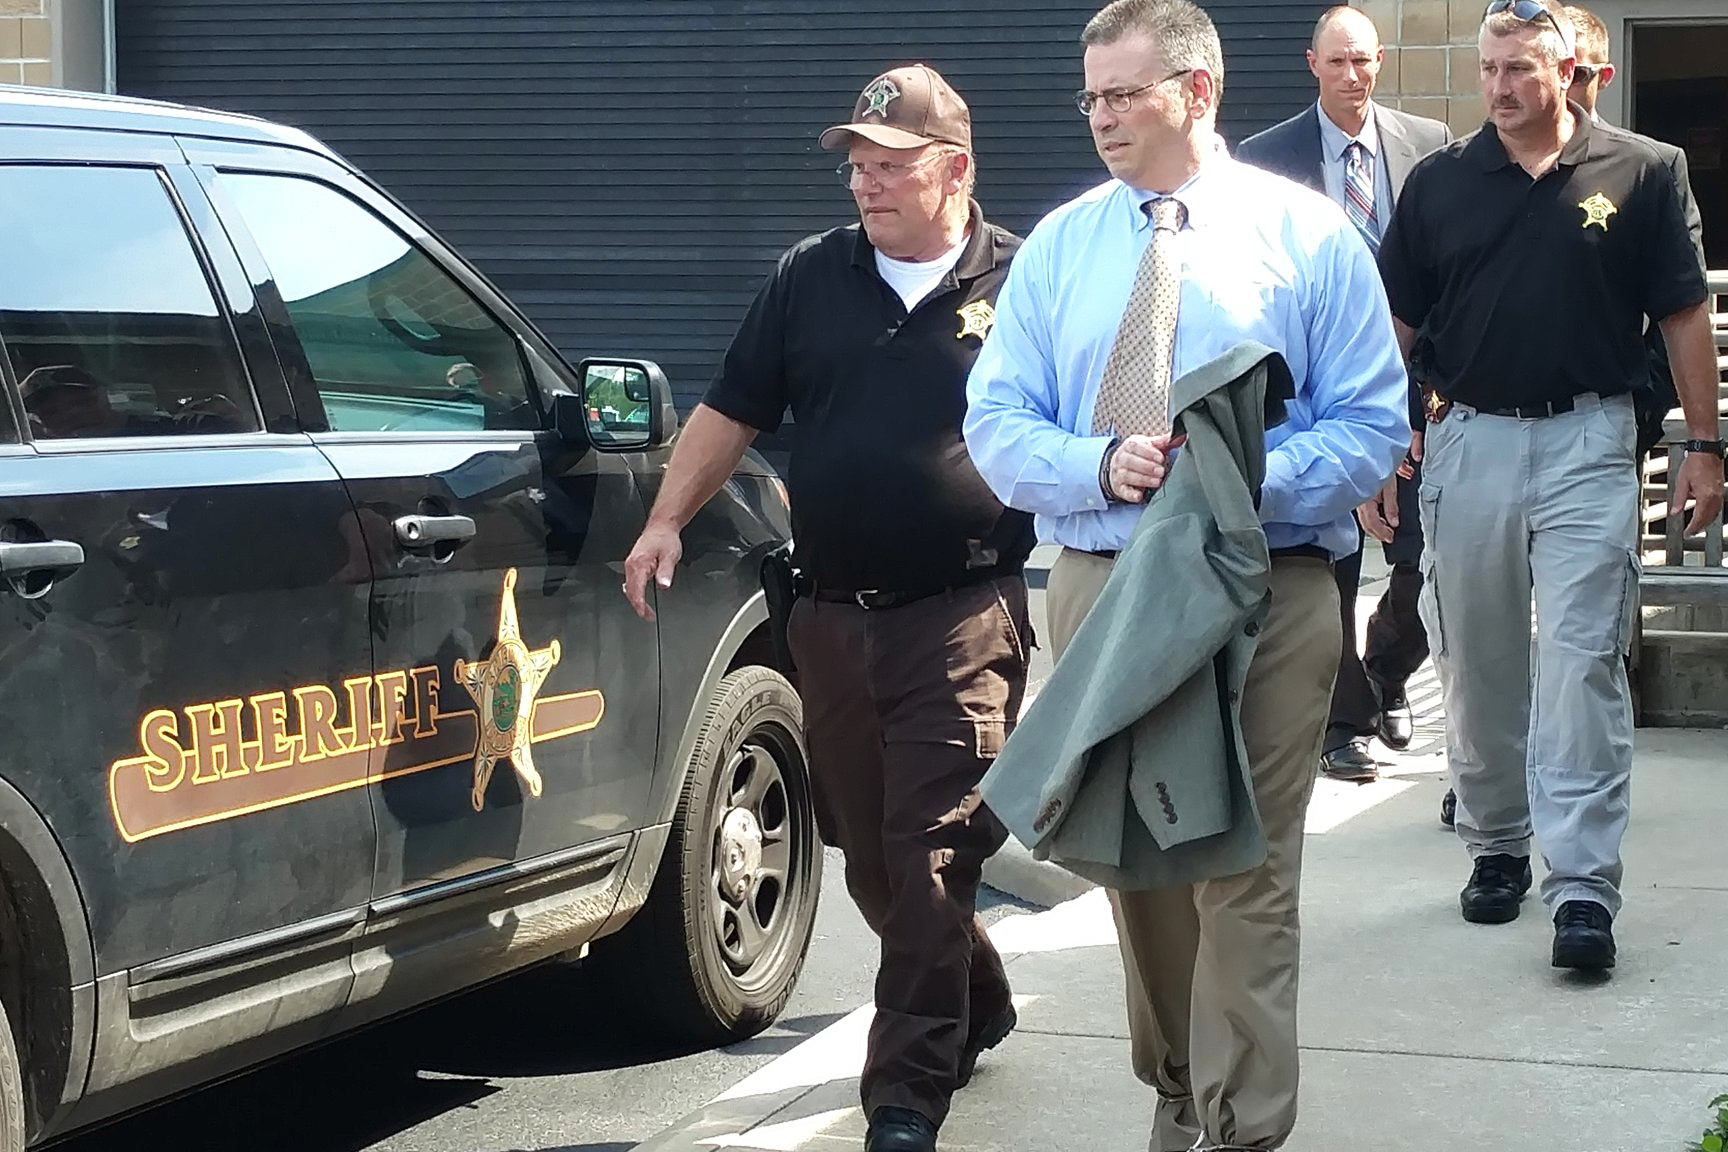 Daniel Messel, shackled, is escorted to the Sheriff's vehicle after he looked at his vehicle with the jurors.